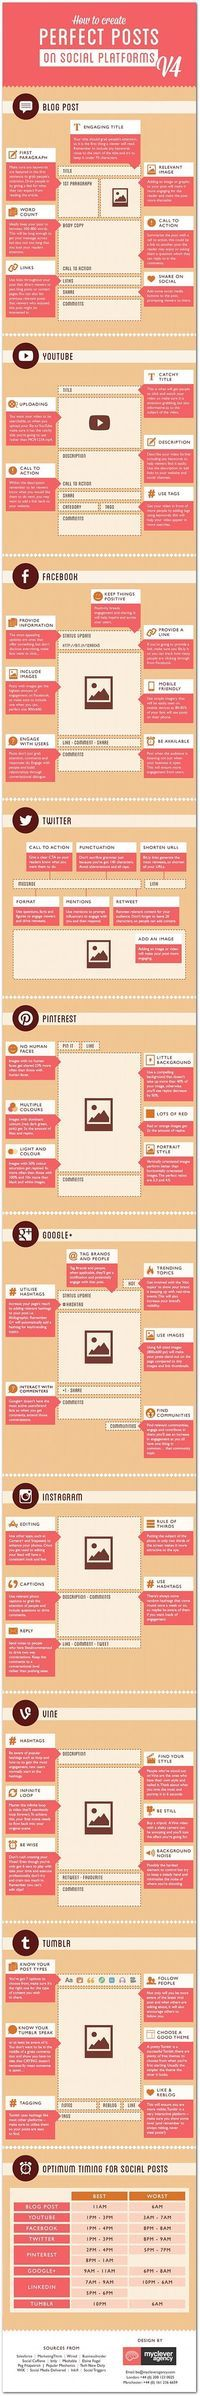 [INFOGRAPHIC] Guide to Perfect Social Media Posts for a blog; YouTube; Facebook; Twitter; Pinterest; Google+; Instagram; Vine; and Tumblr: Title; Image; First paragraph; Word count; Call-to-action; Links; Social Media share; Best times; Details.